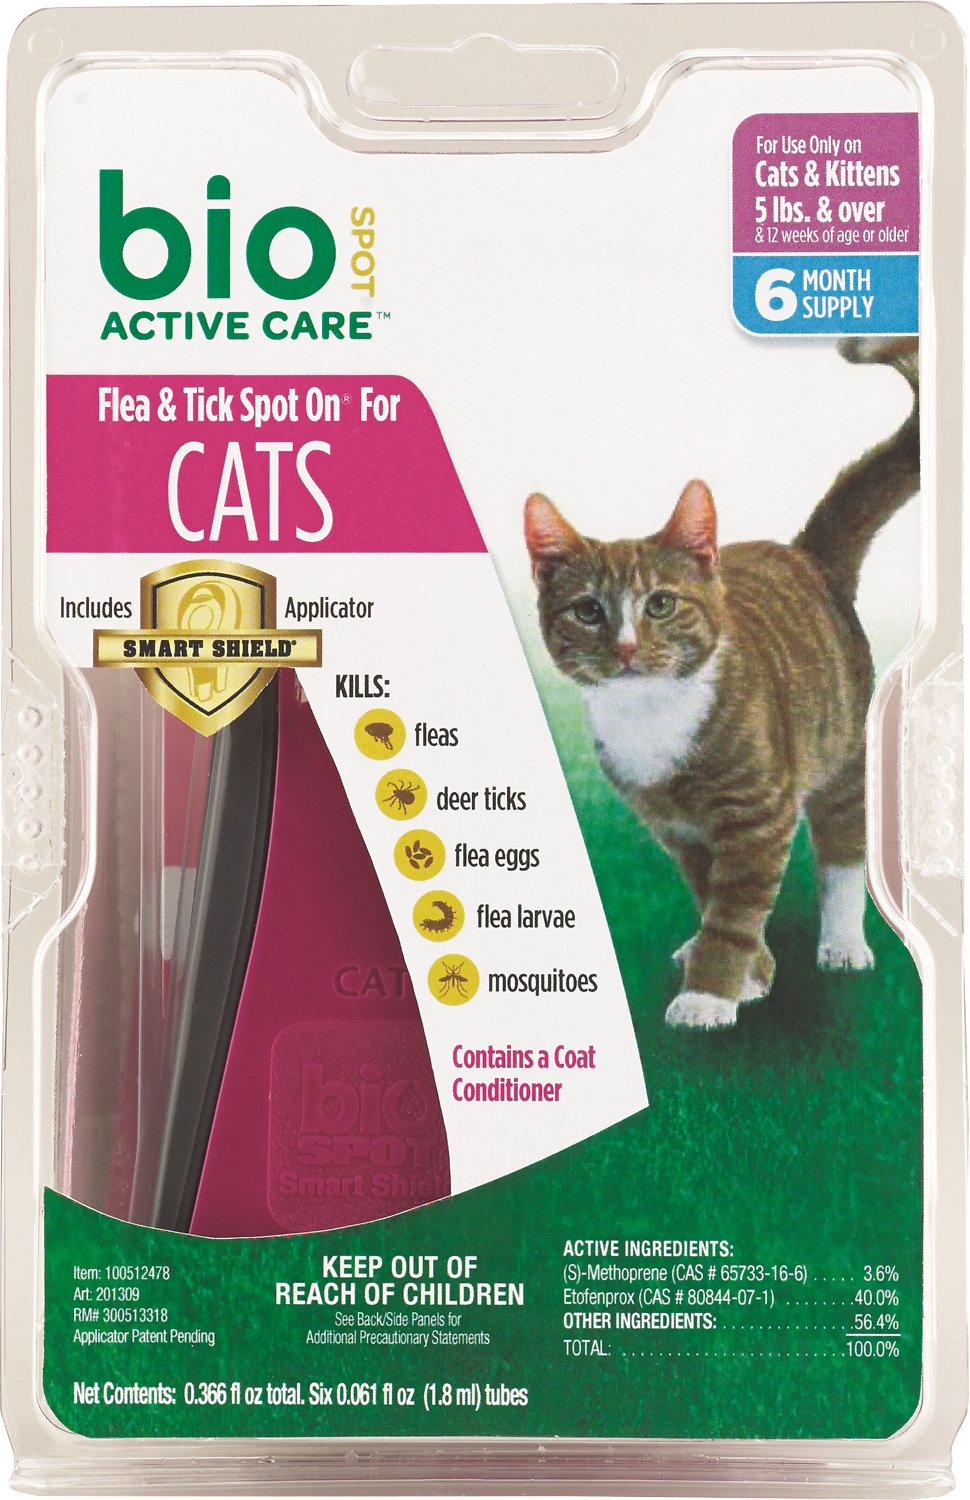 Bio Spot Active Care Flea Tick On For Cats 5 Pounds And Over 6 Month Supply Chewy